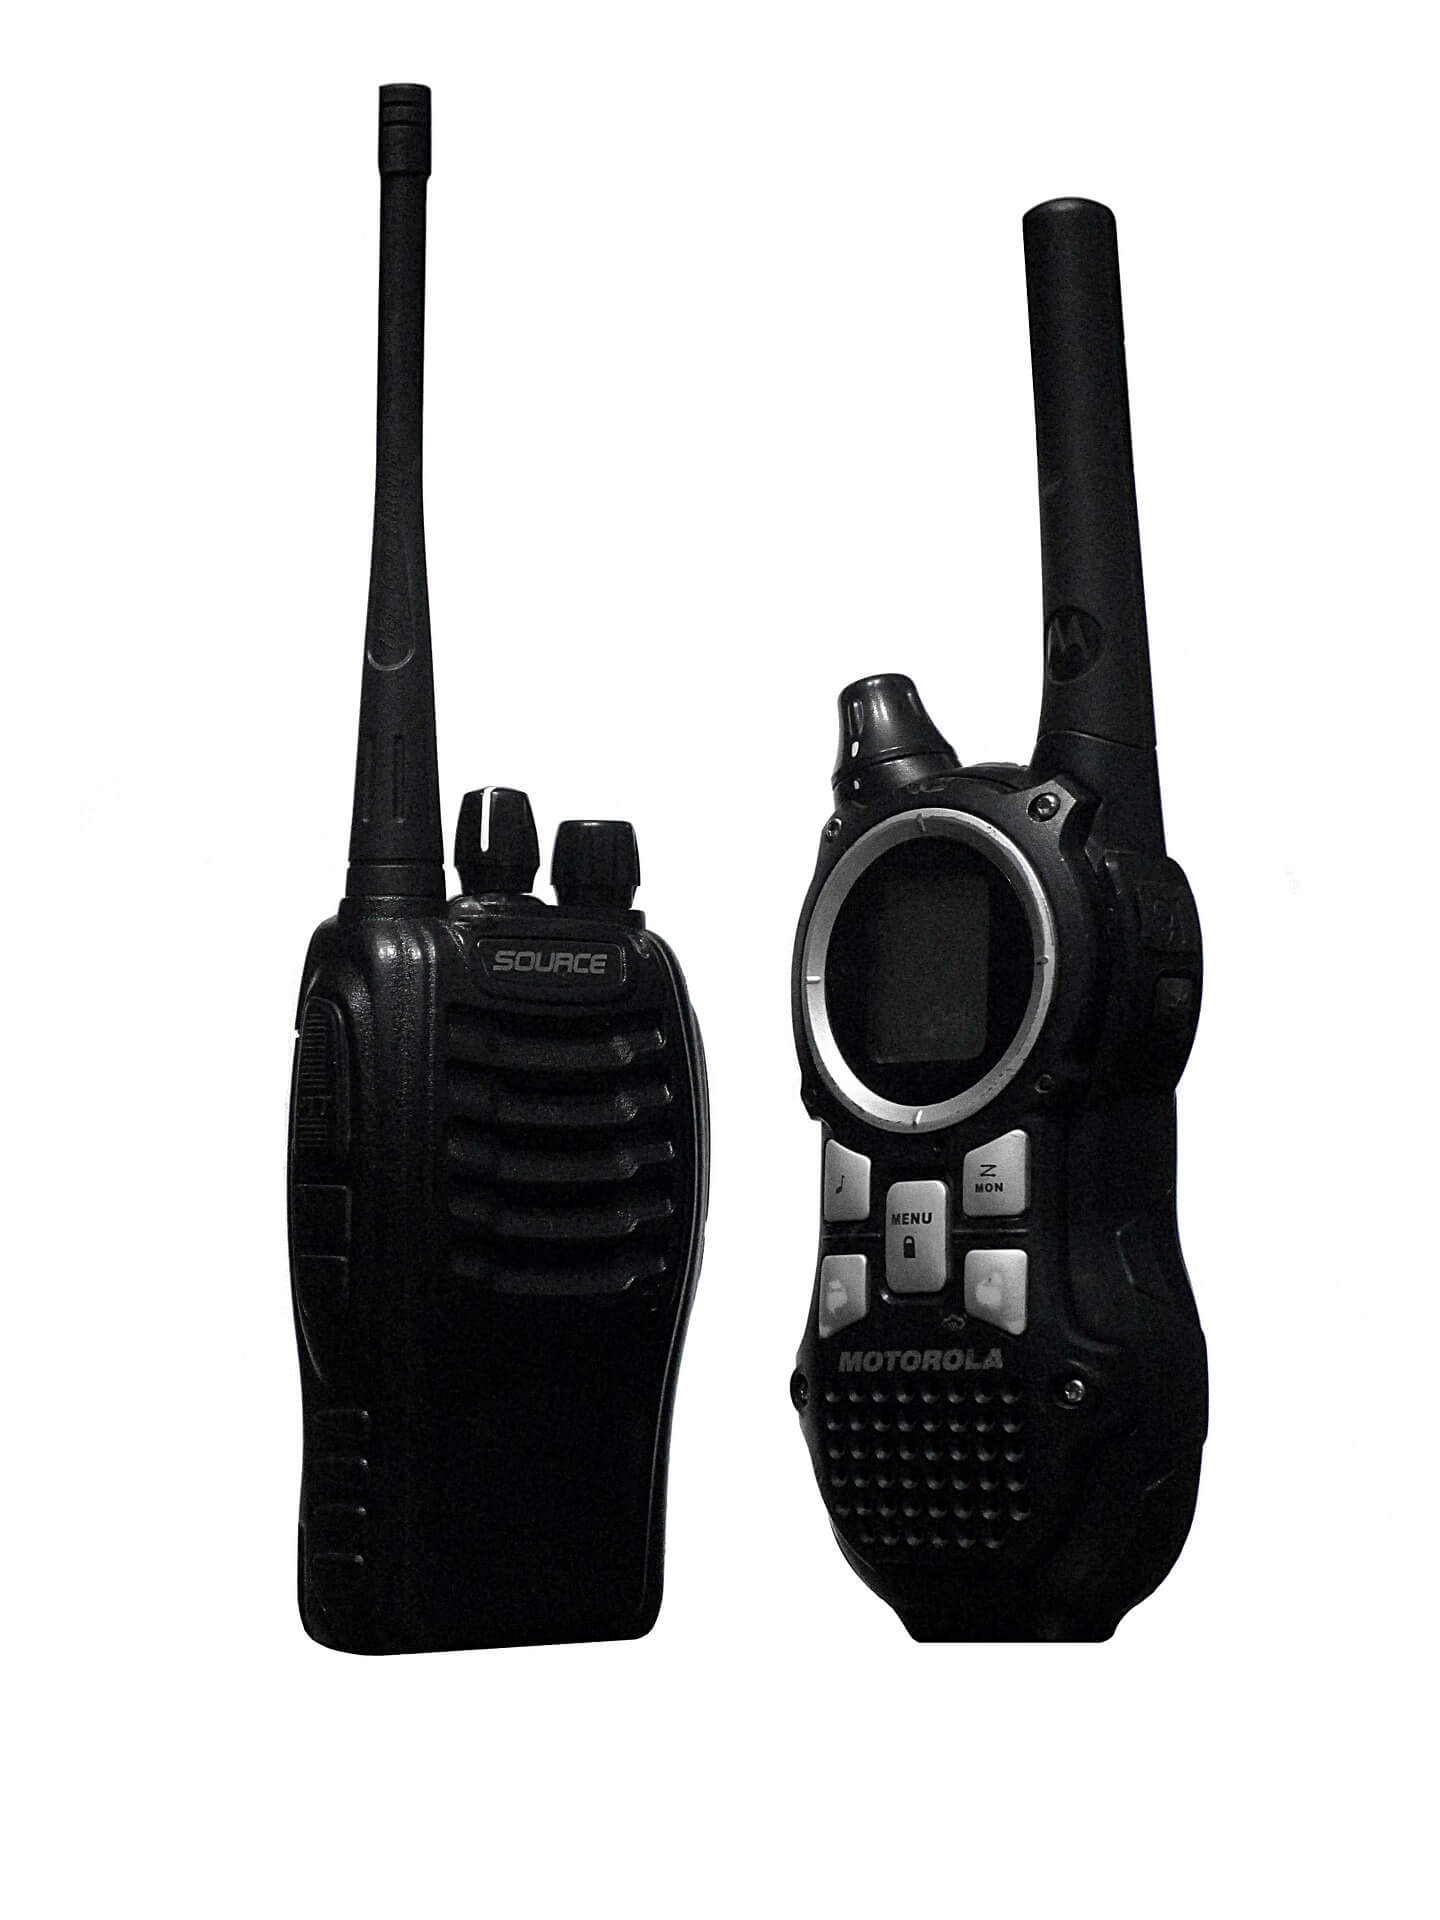 Two walkie talkies.